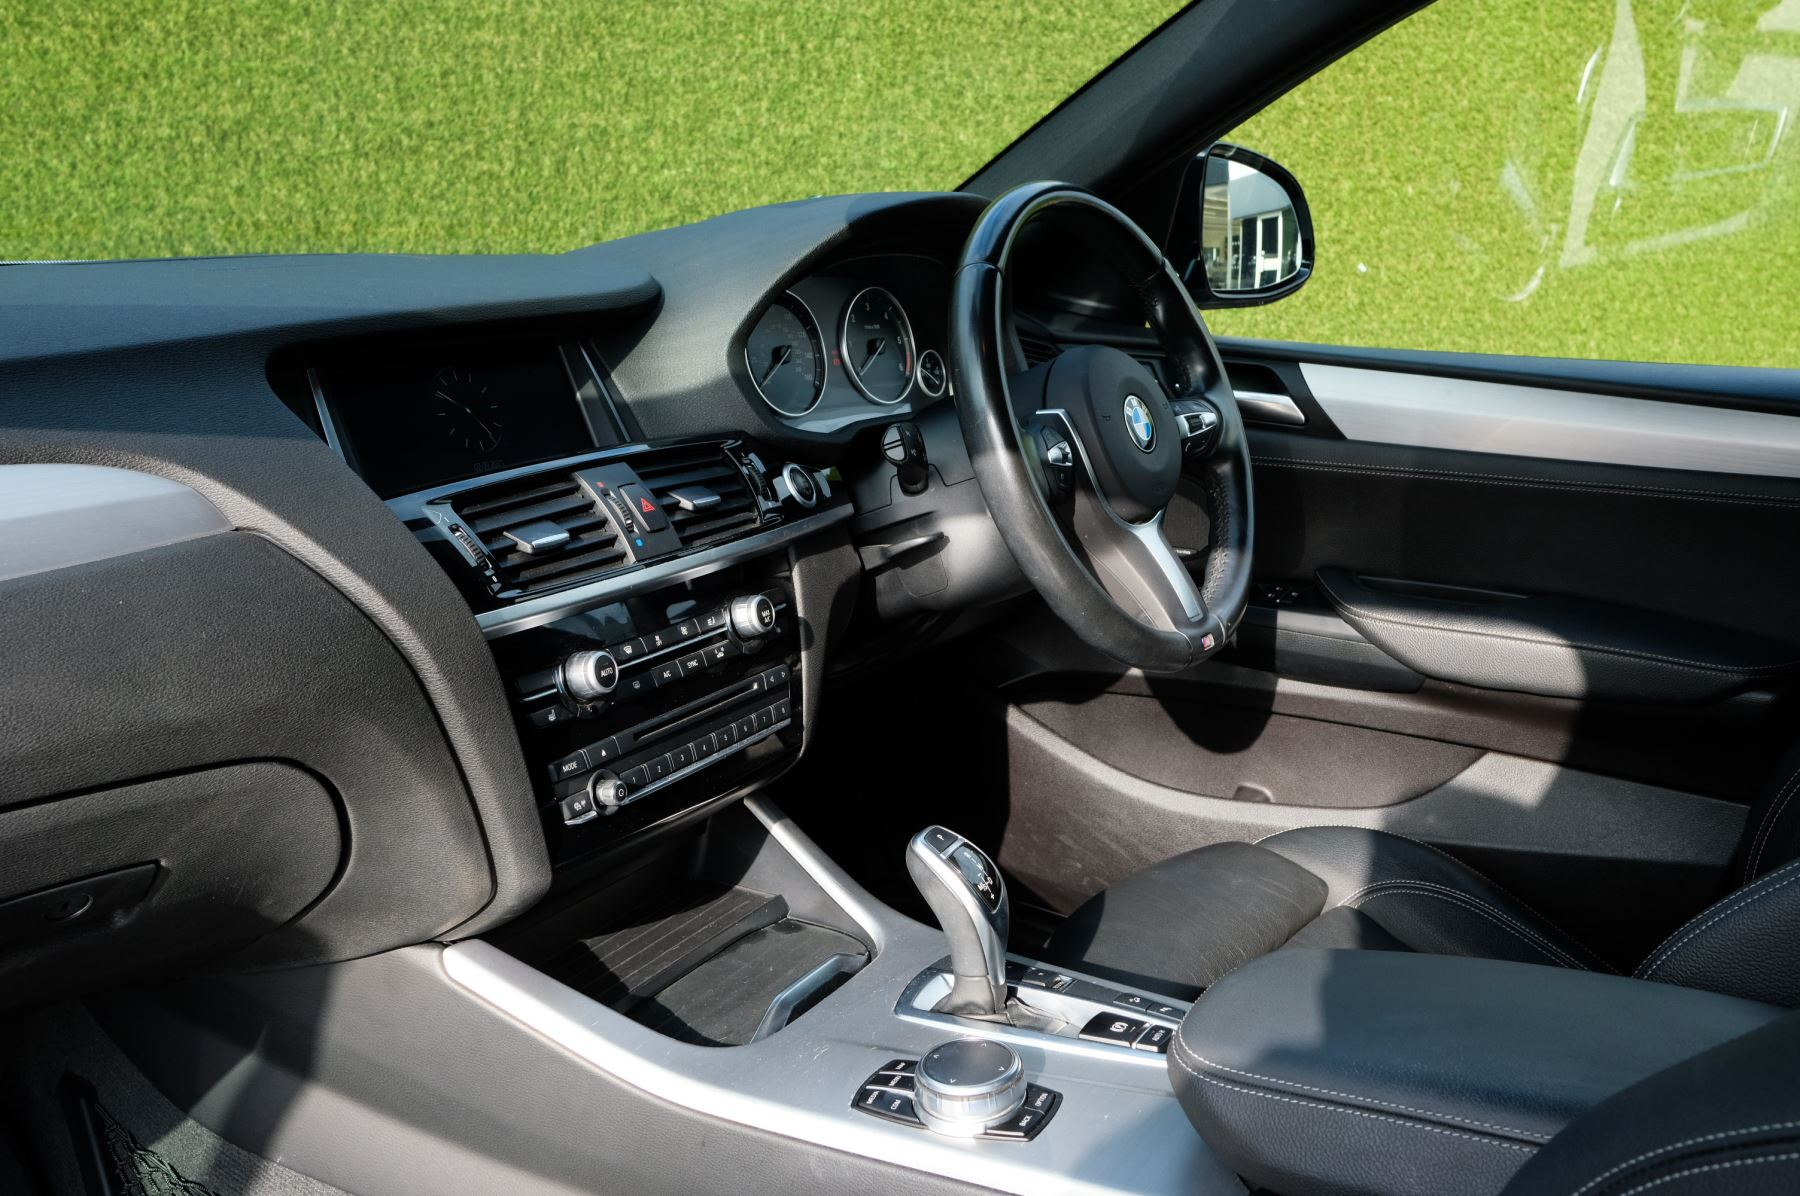 BMW X4 xDrive30d M Sport 5dr Step - M Sport Plus Package - Interior Comfort Package - Elec Glass Sunroof -  image 16